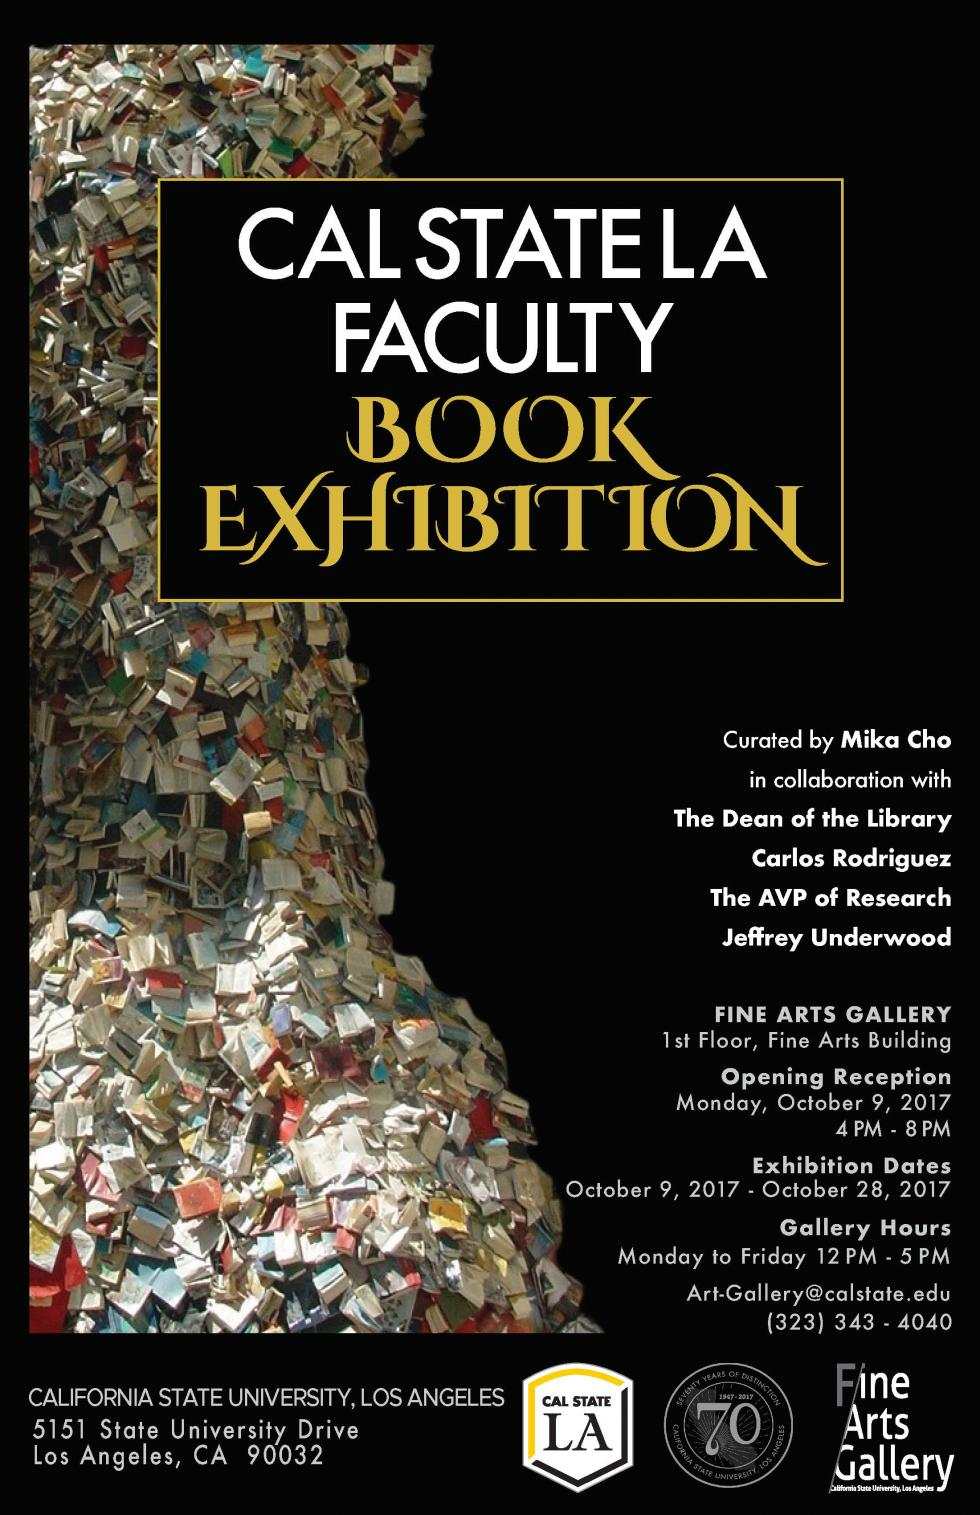 Faculty Book Exhibition